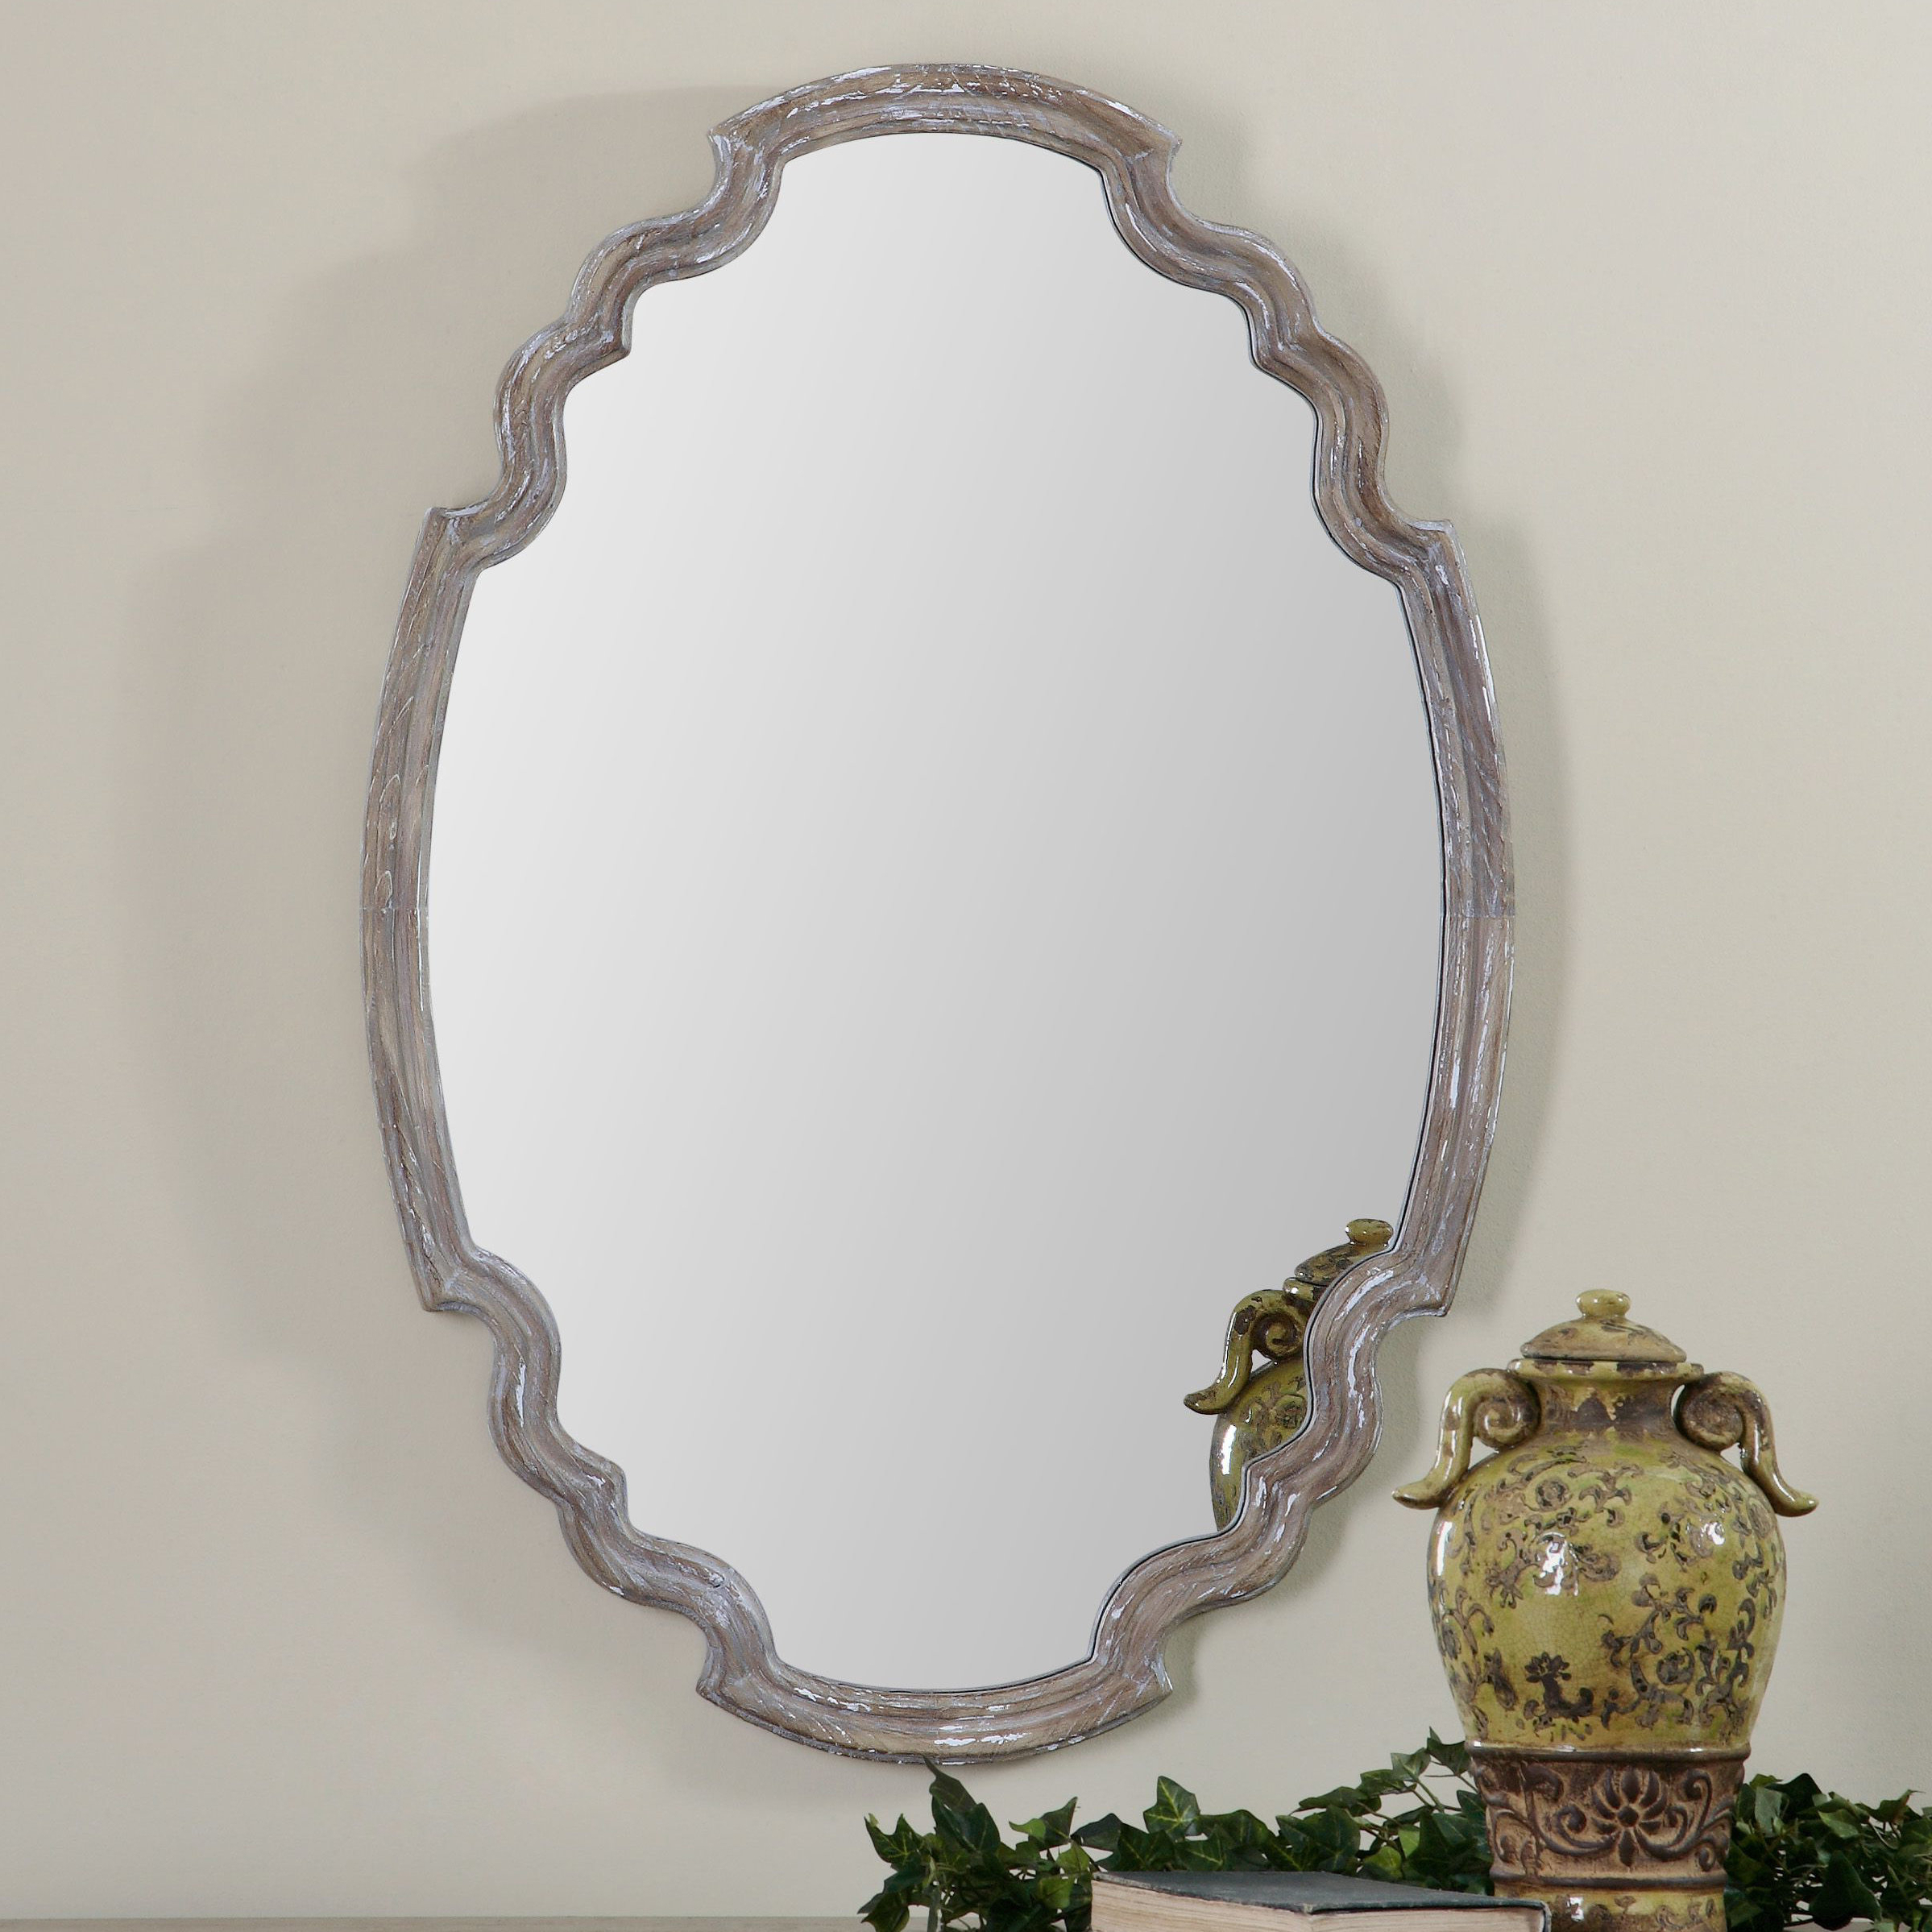 Moseley Accent Mirrors With Latest Wood Accent Mirror (View 17 of 20)